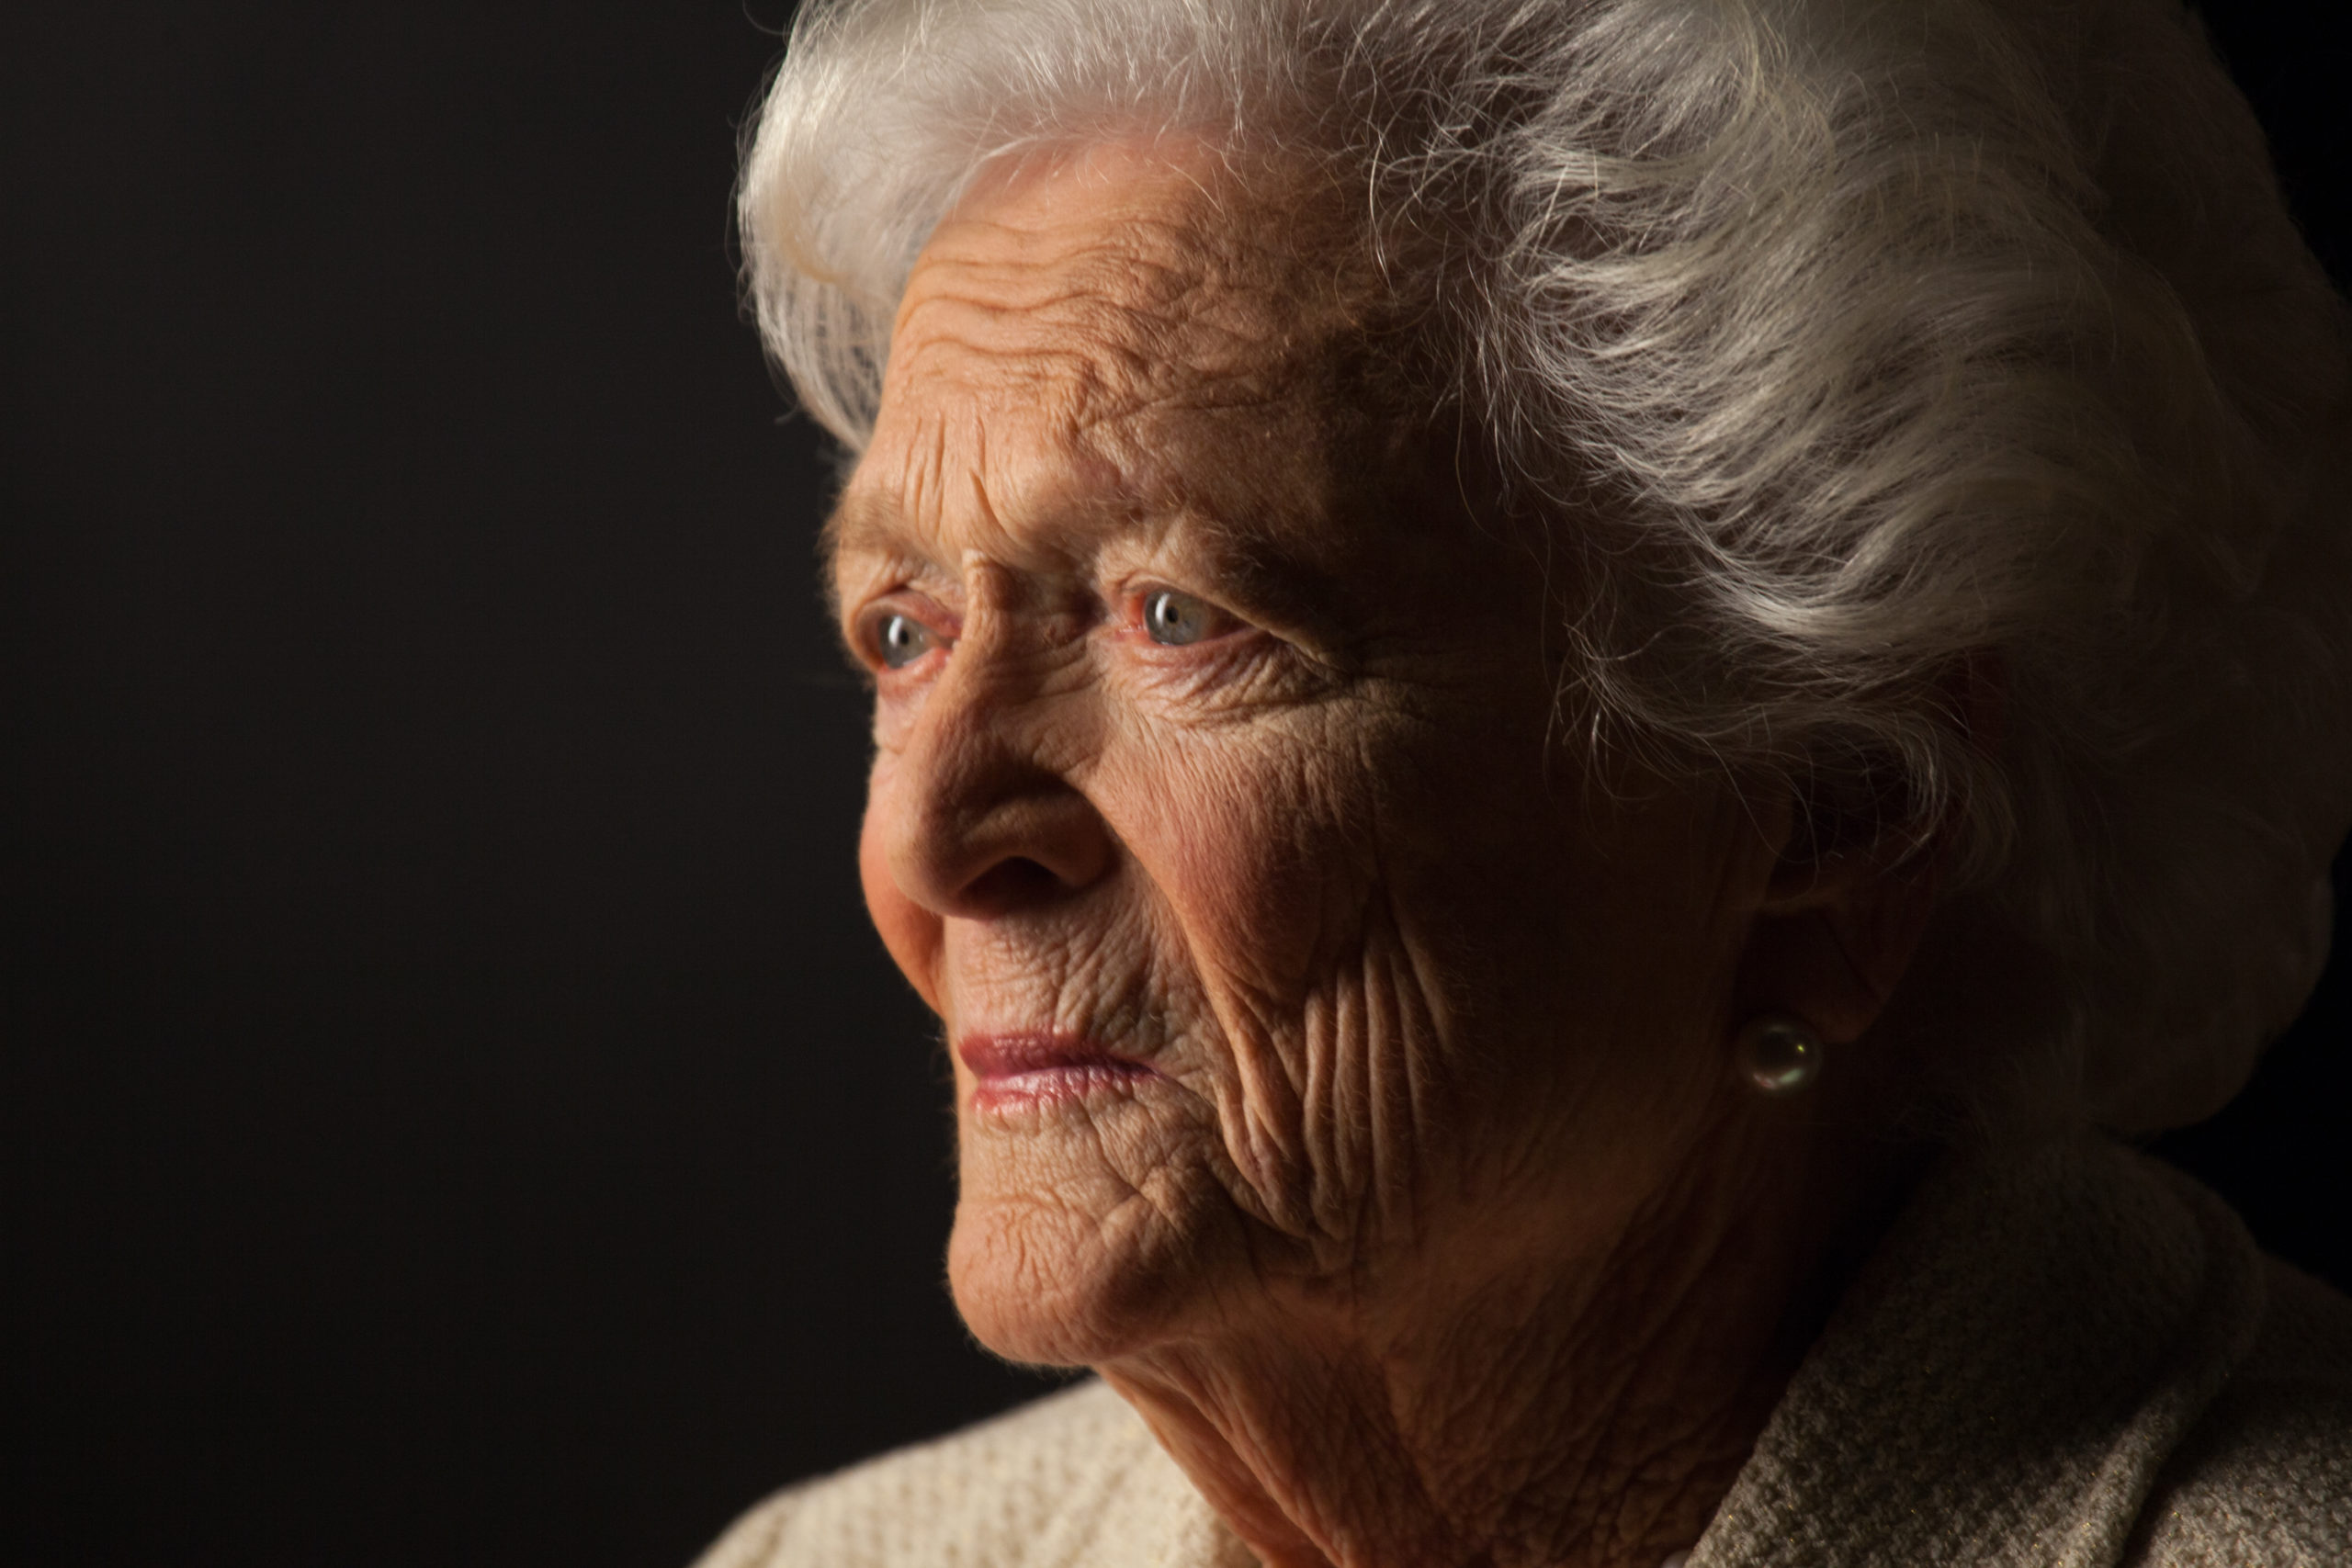 Barbara Bush came out for trans rights at 90 – proving it's never too late